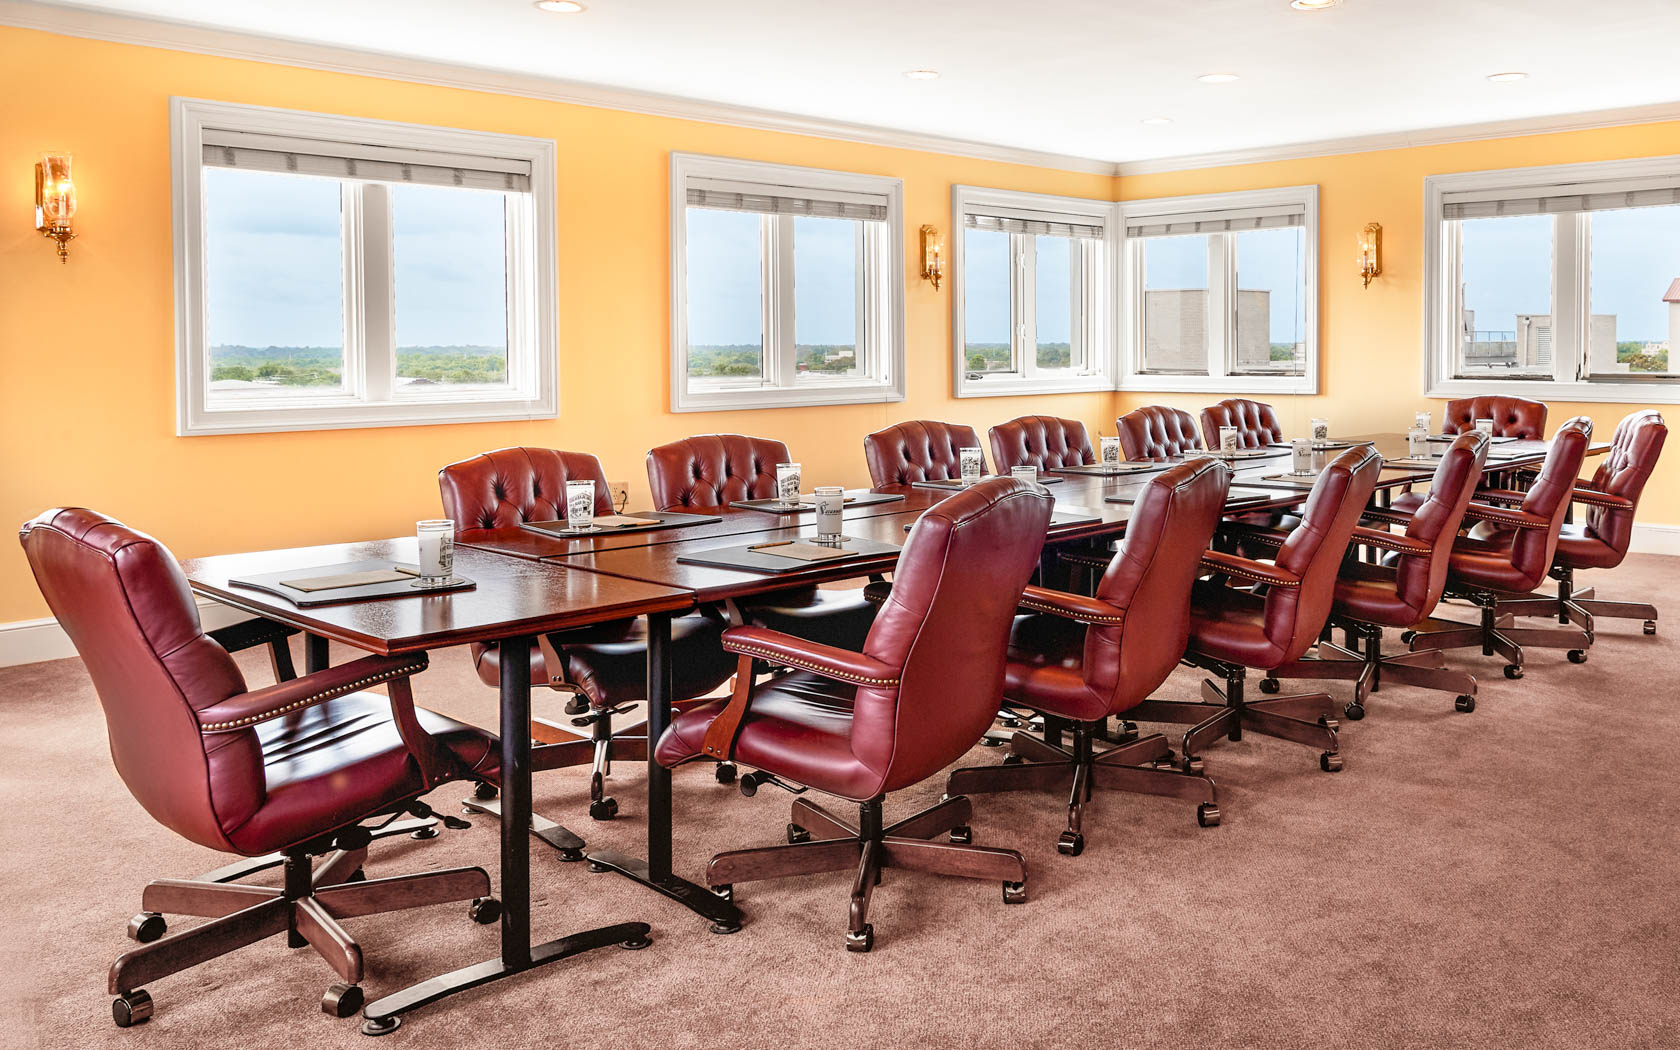 boardroom with long table and chairs surrounding